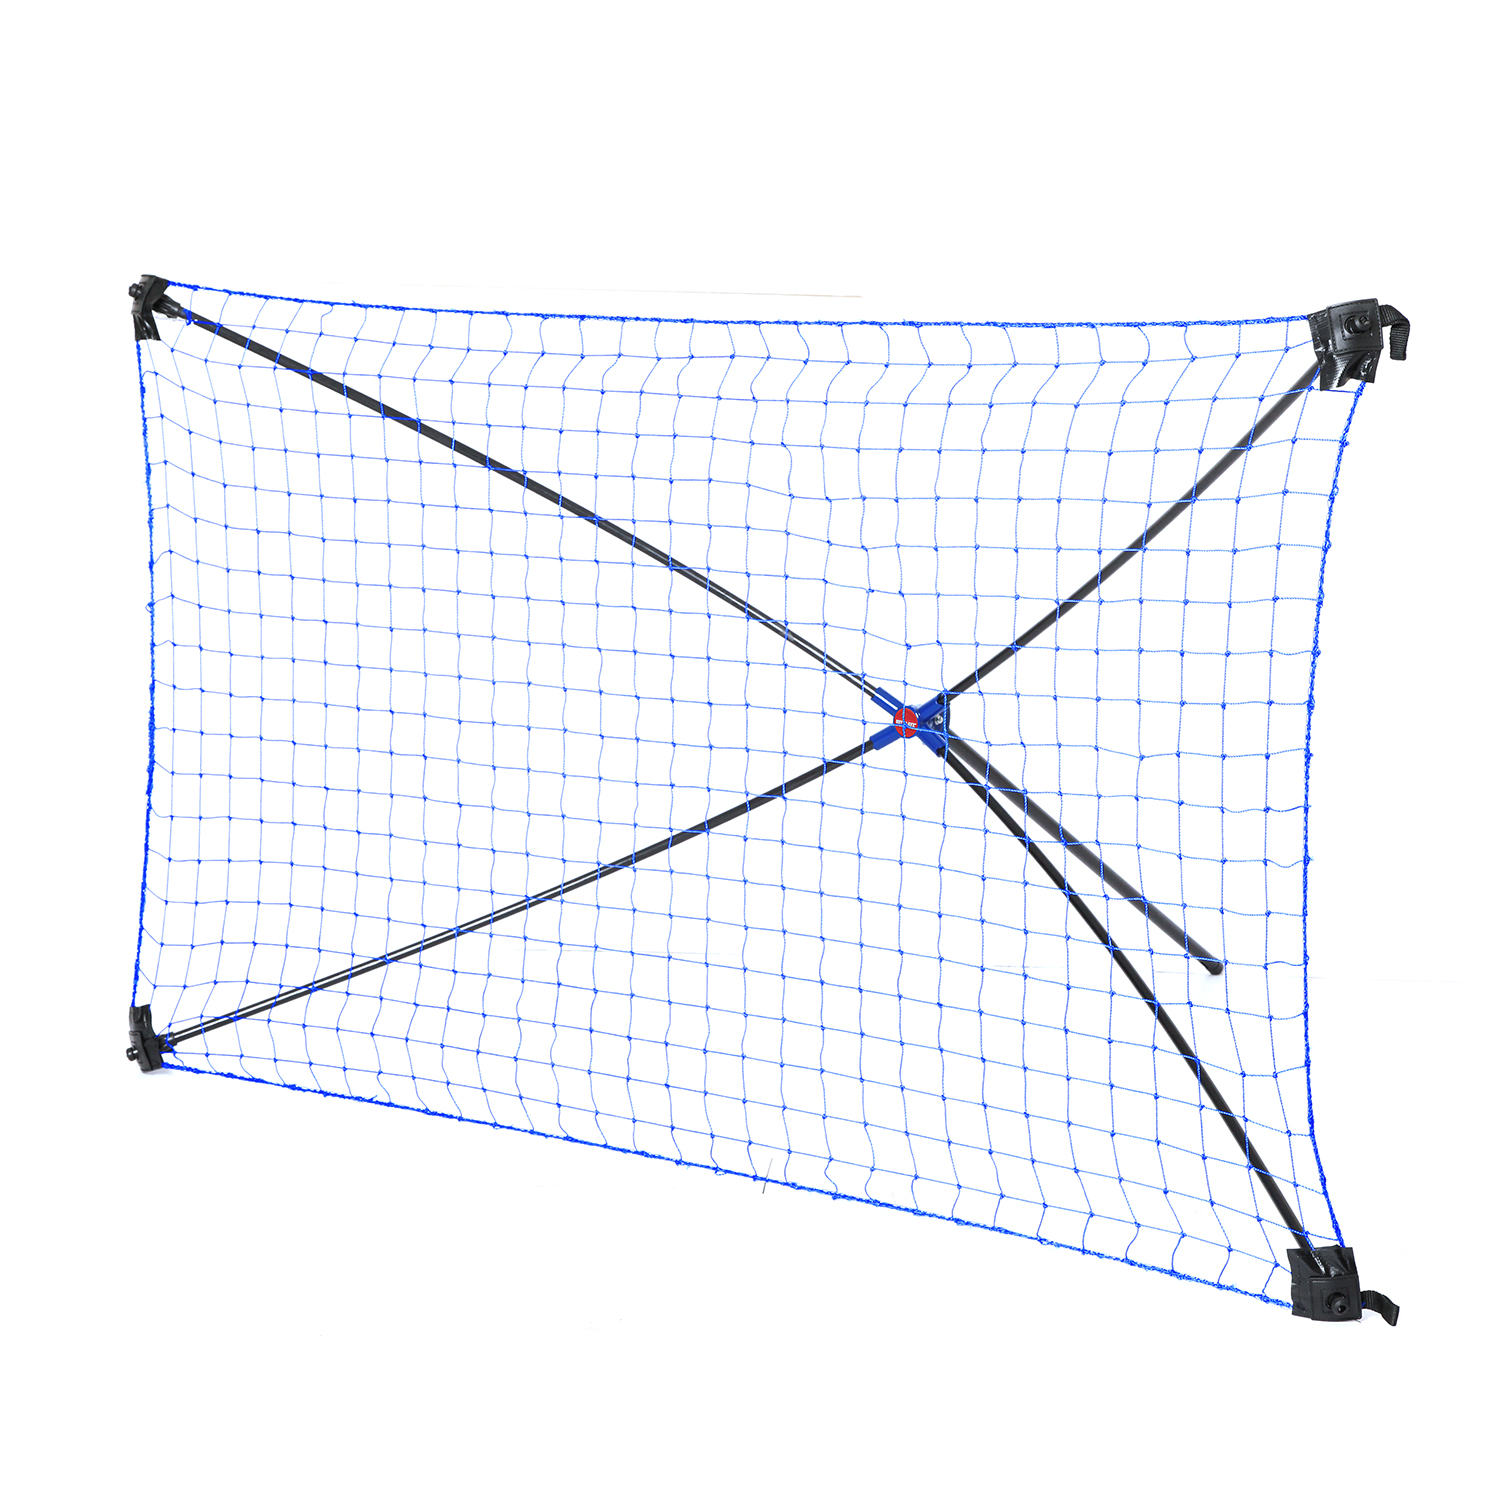 NET PLAYZ Easy Kickback Portable Soccer Rebound Net, 5FT x 3FT Rebounder, Quick Set Up, Lightweight, Multi Angle Adjustment